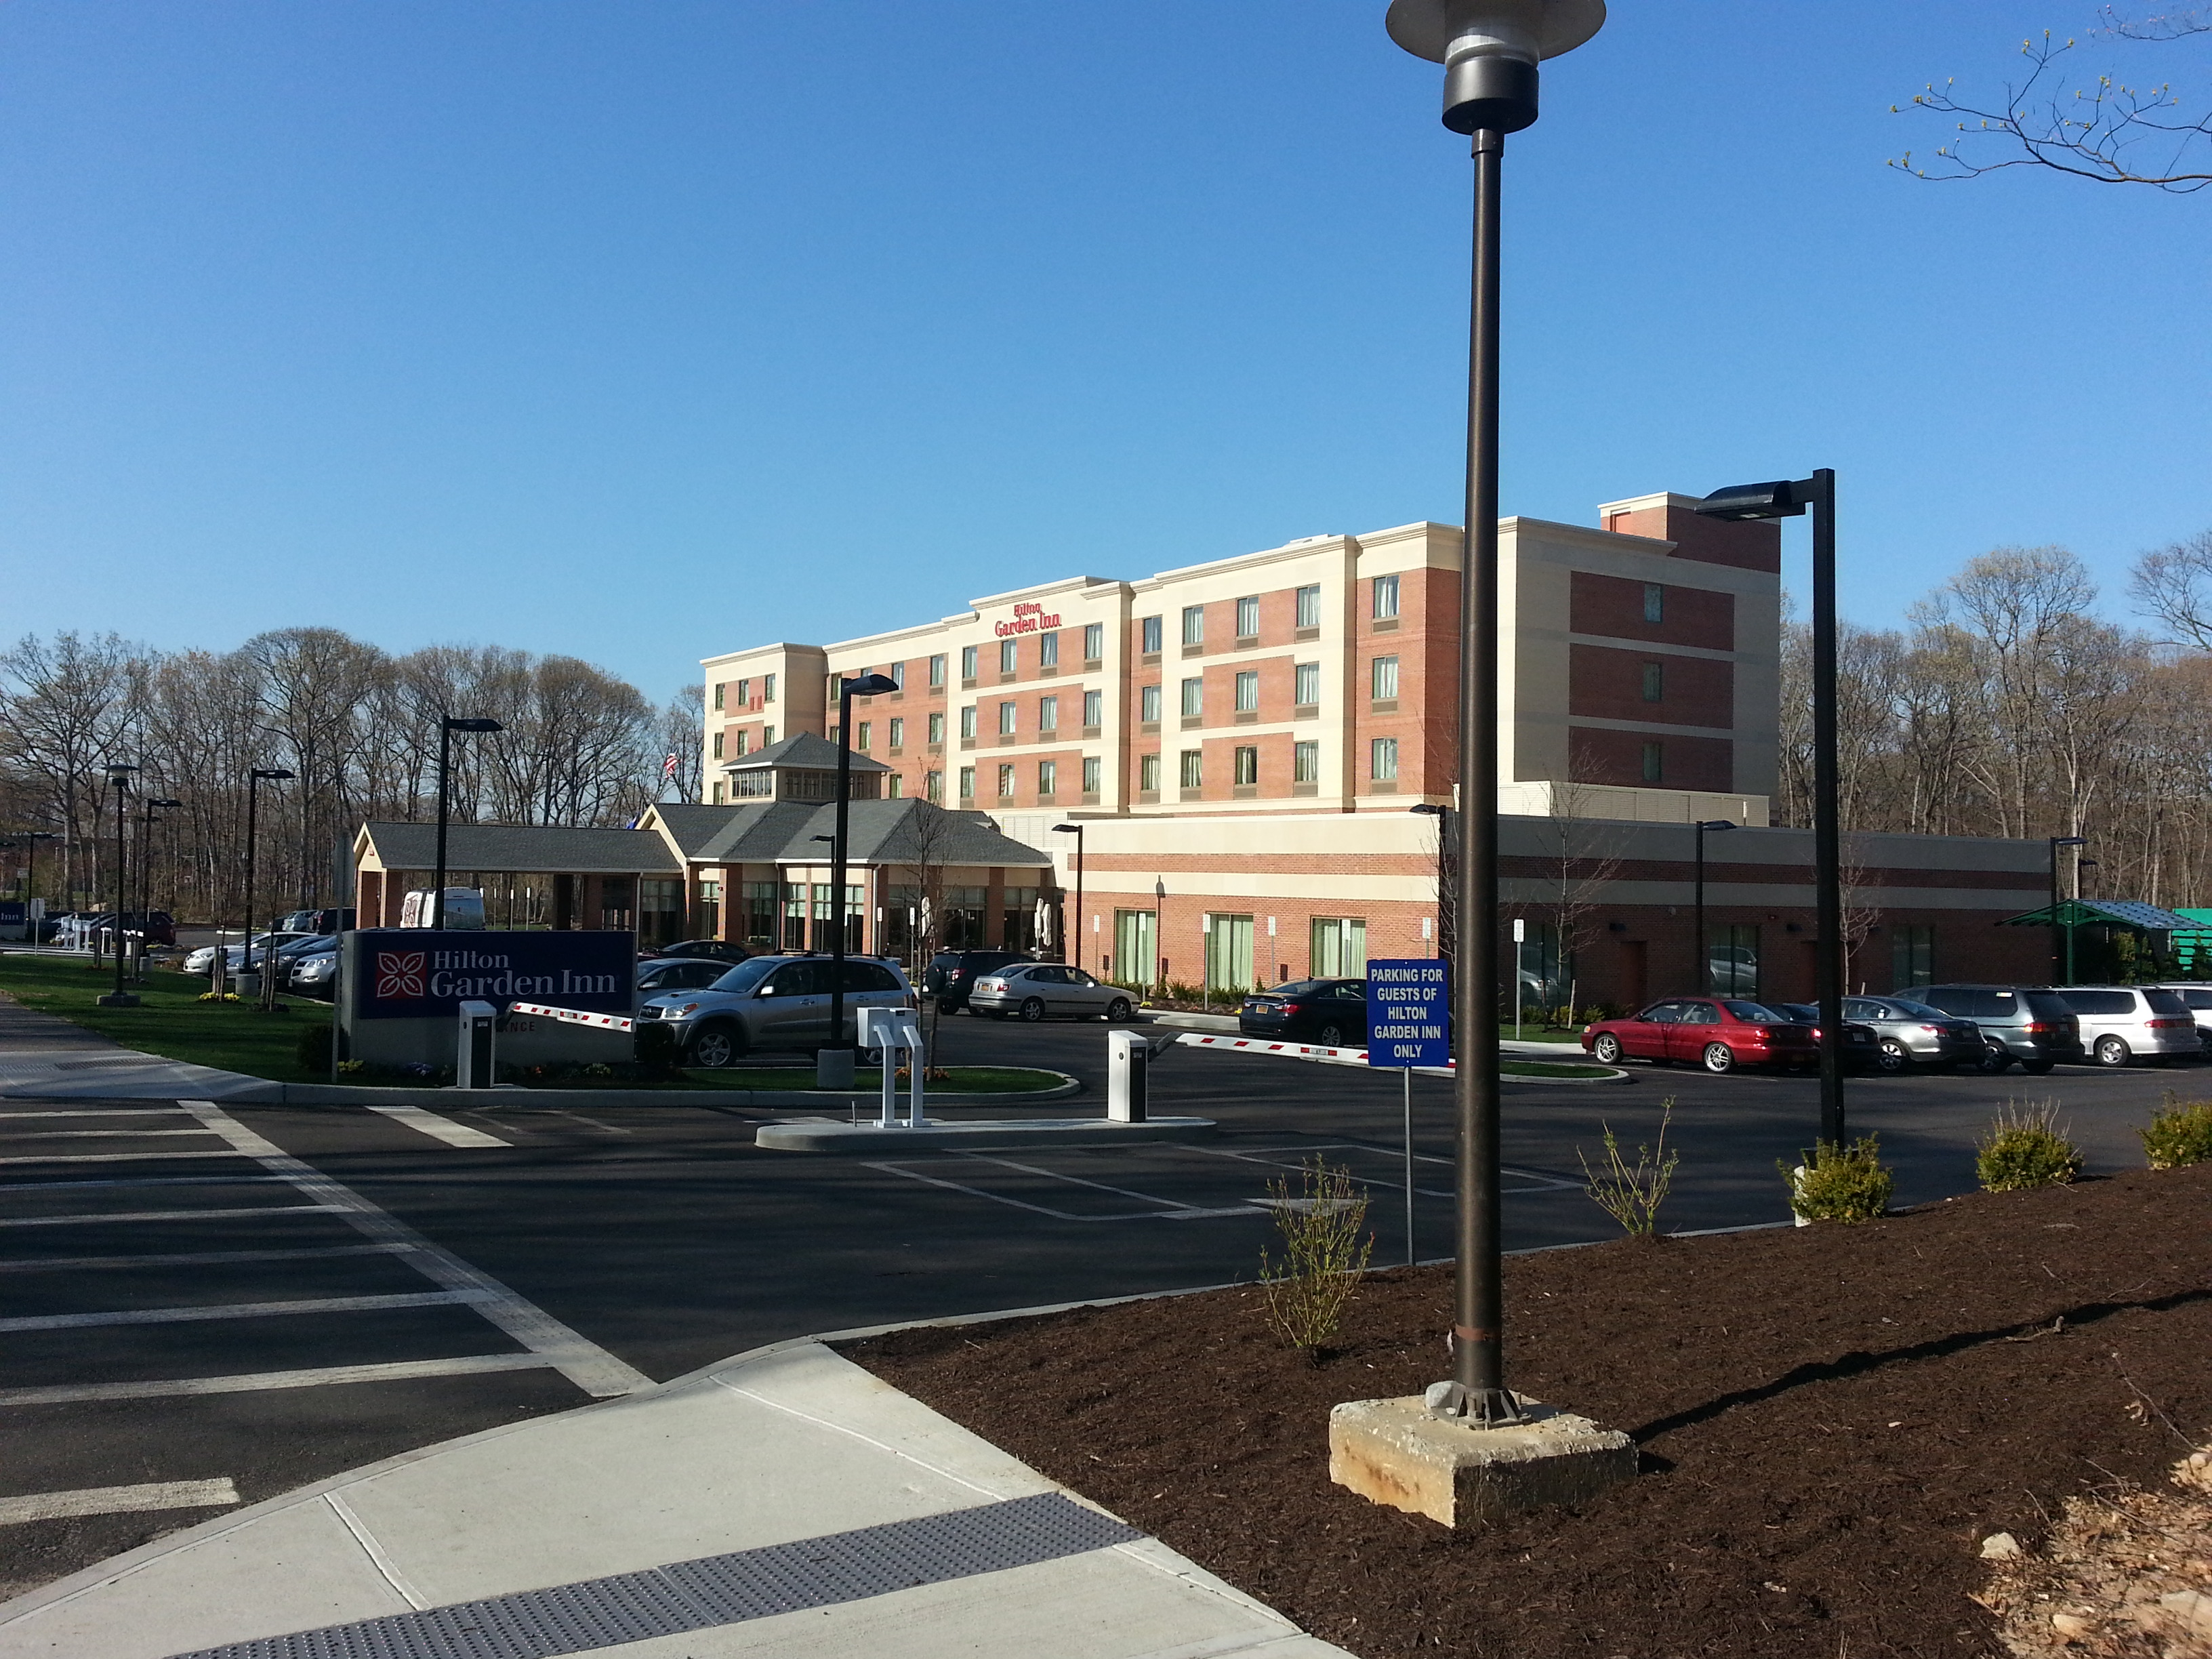 Image Result For Hilton Garden Inn Stony Brook